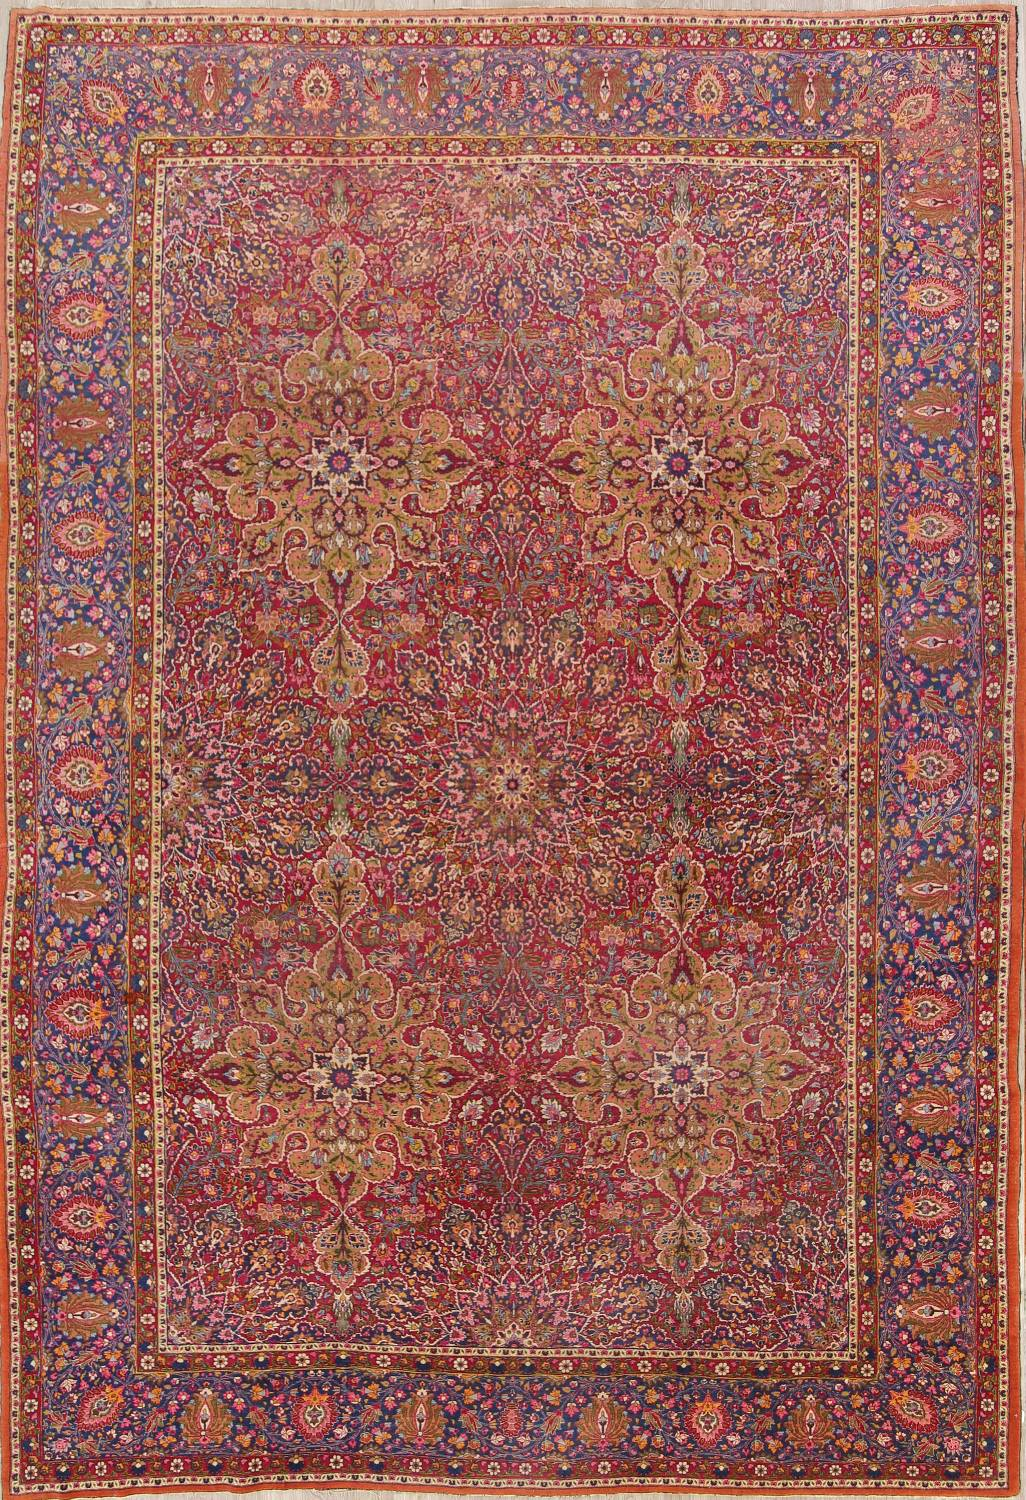 All-Over Floral 11x16 Mashad Persian Area Rug image 1